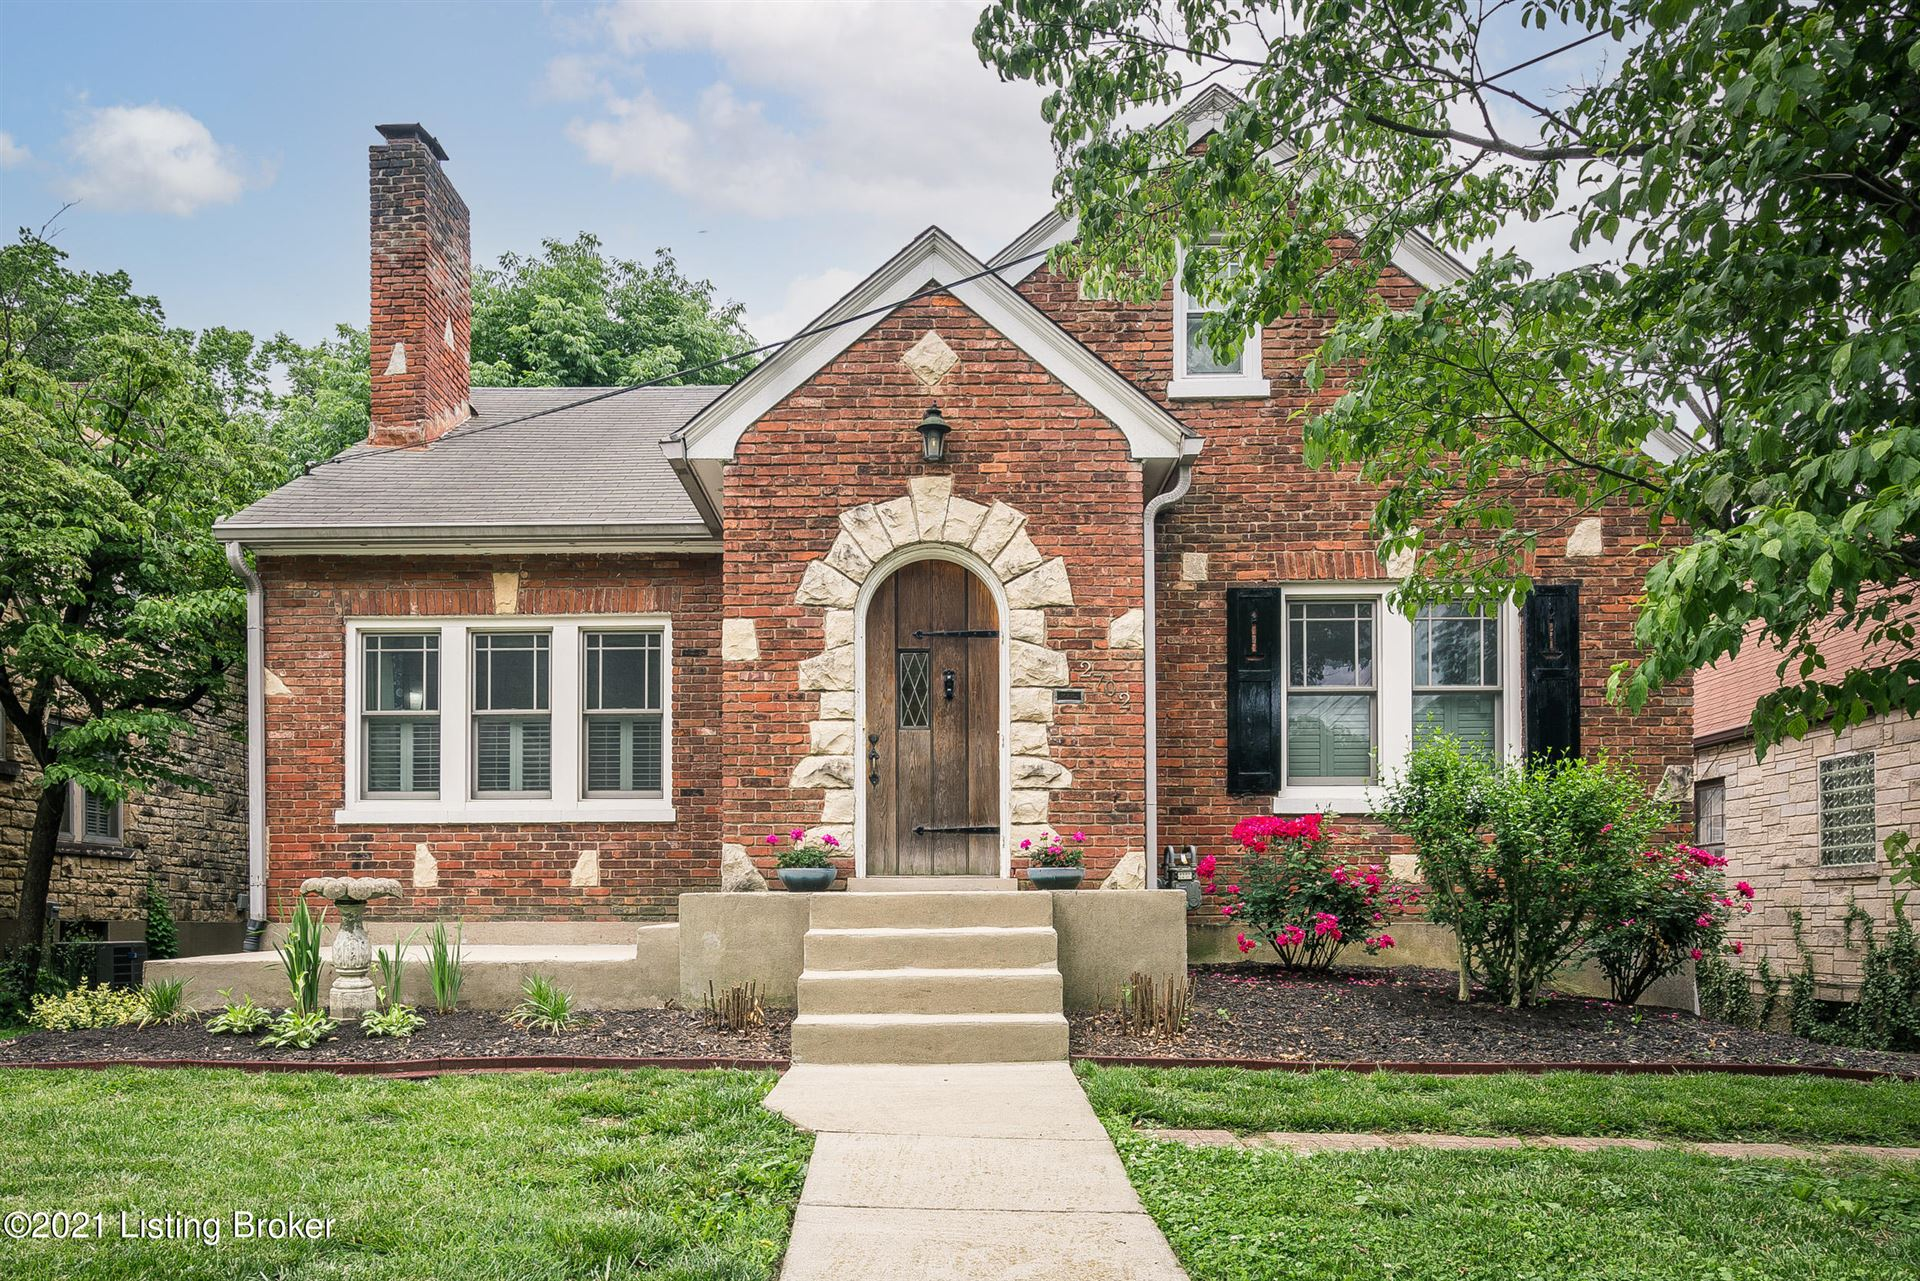 Photo for 2702 Brownsboro Rd, Louisville, KY 40206 (MLS # 1587185)